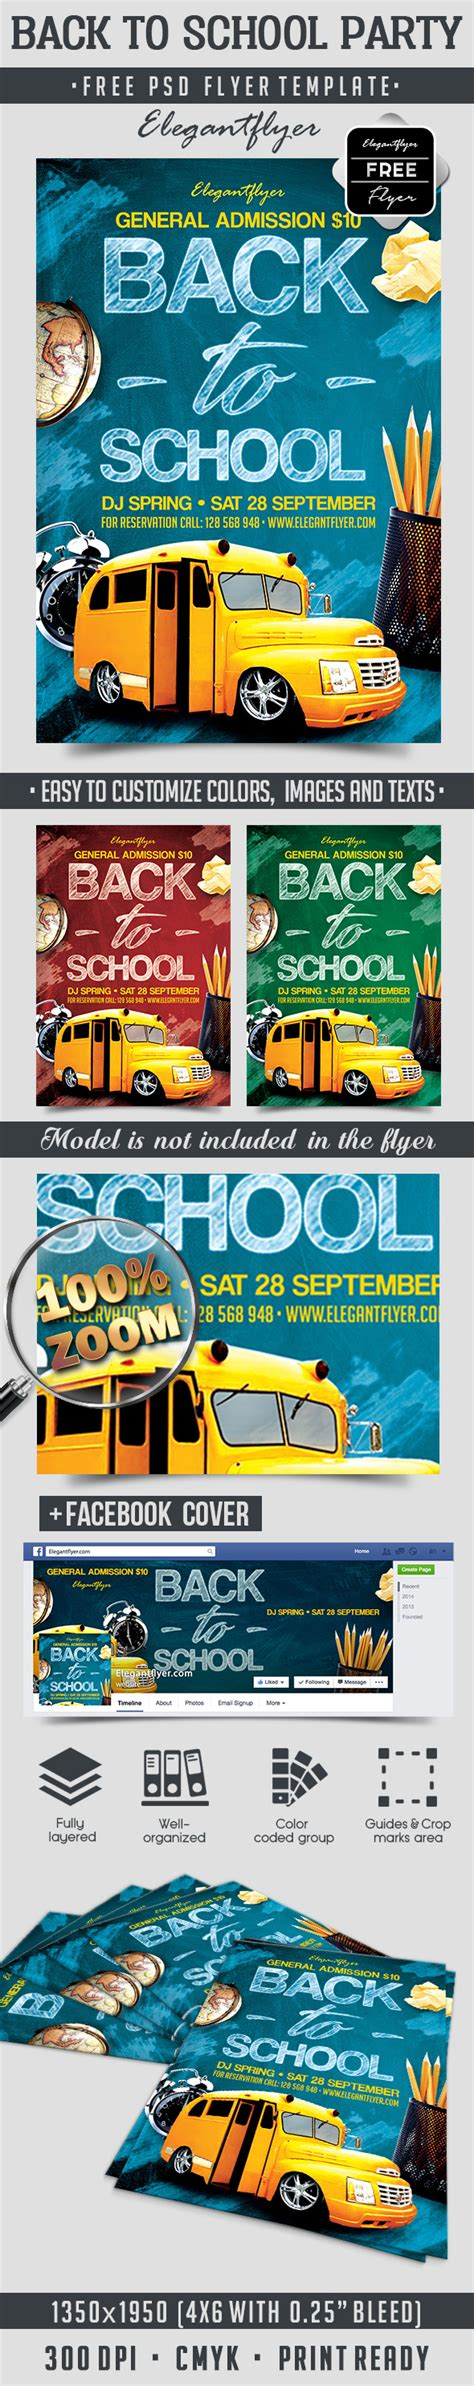 Back To School Party  Free Flyer Psd Template  By. Simple Invoice Template Free. Human Rights Poster. Uc Davis Graduate School Of Management. Business Card Blank Template. Hockey Poster Ideas. Harvard Graduate School Of Design Acceptance Rate. Portland State Graduate Programs. Incredible Quicken Invoice Template